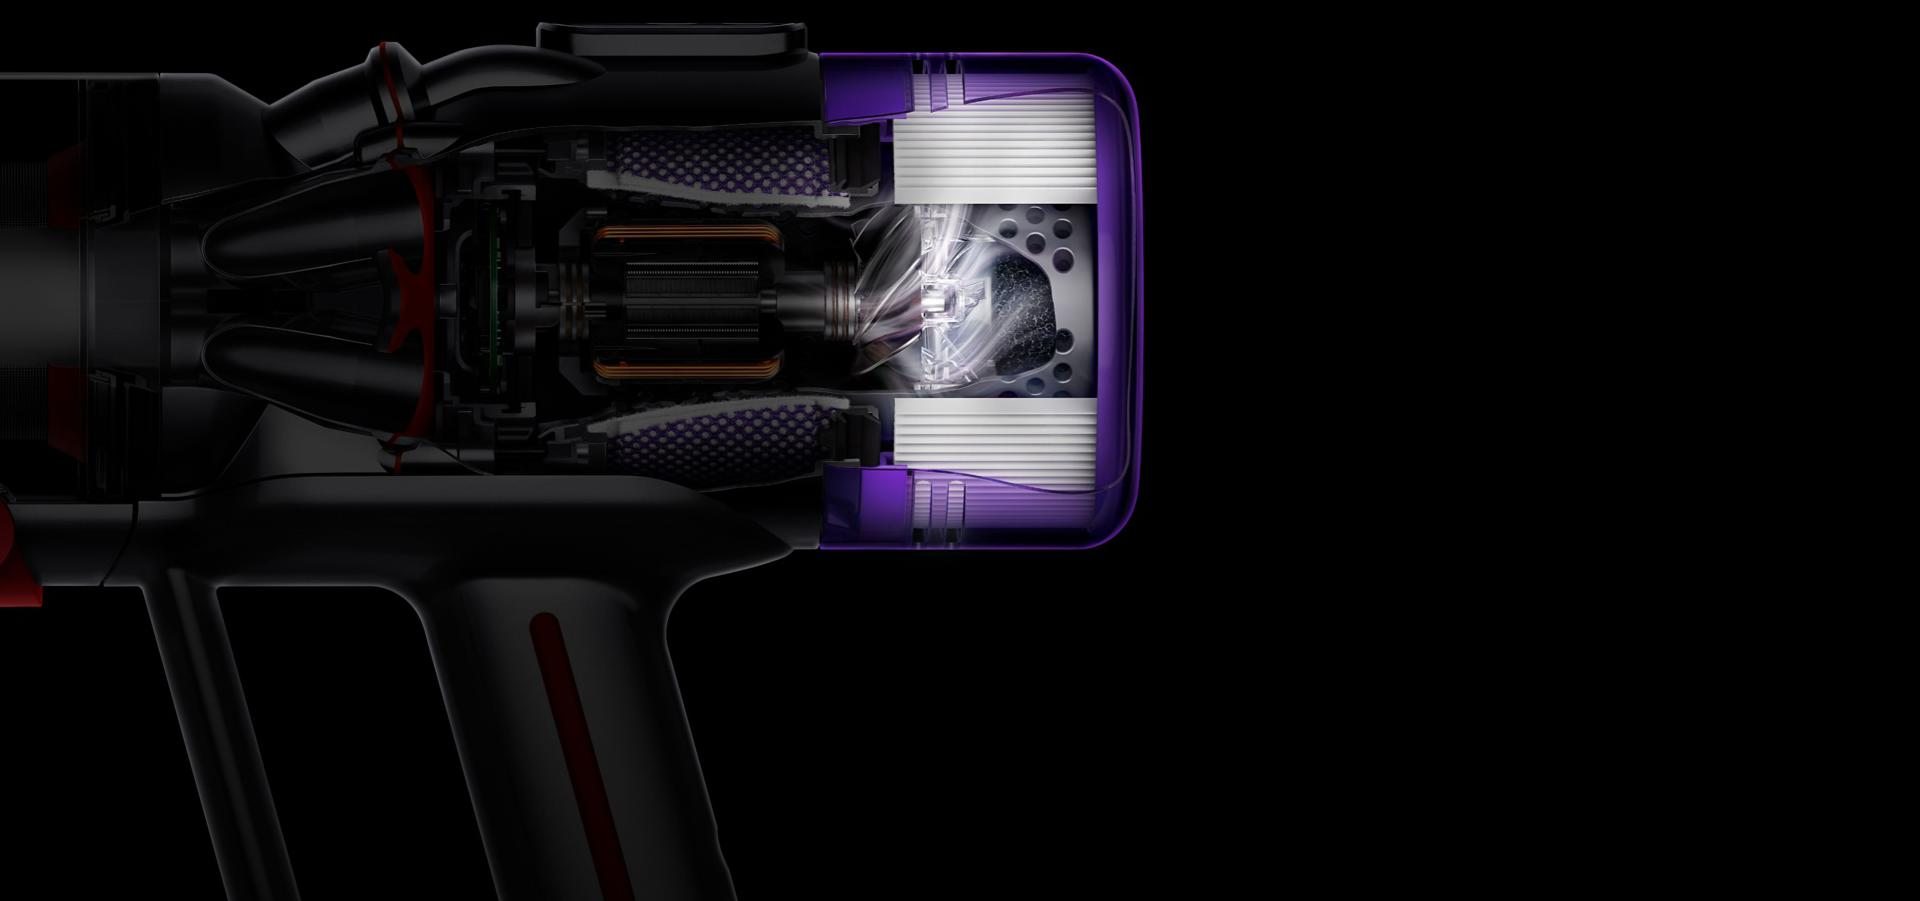 The Dyson Micro 1.5kg's 5 layers of filtration